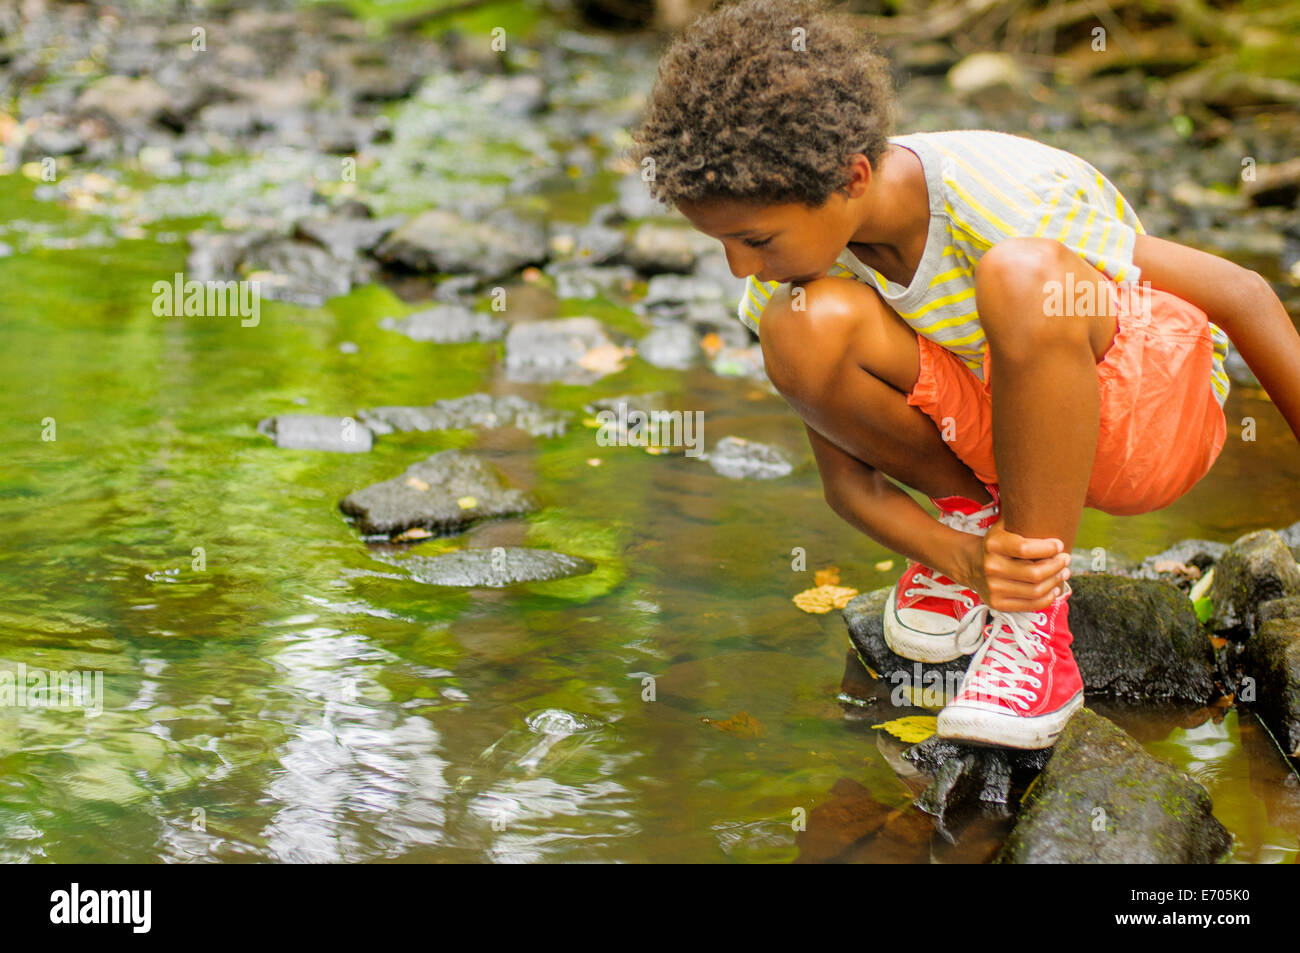 Boy looking for fish in river - Stock Image